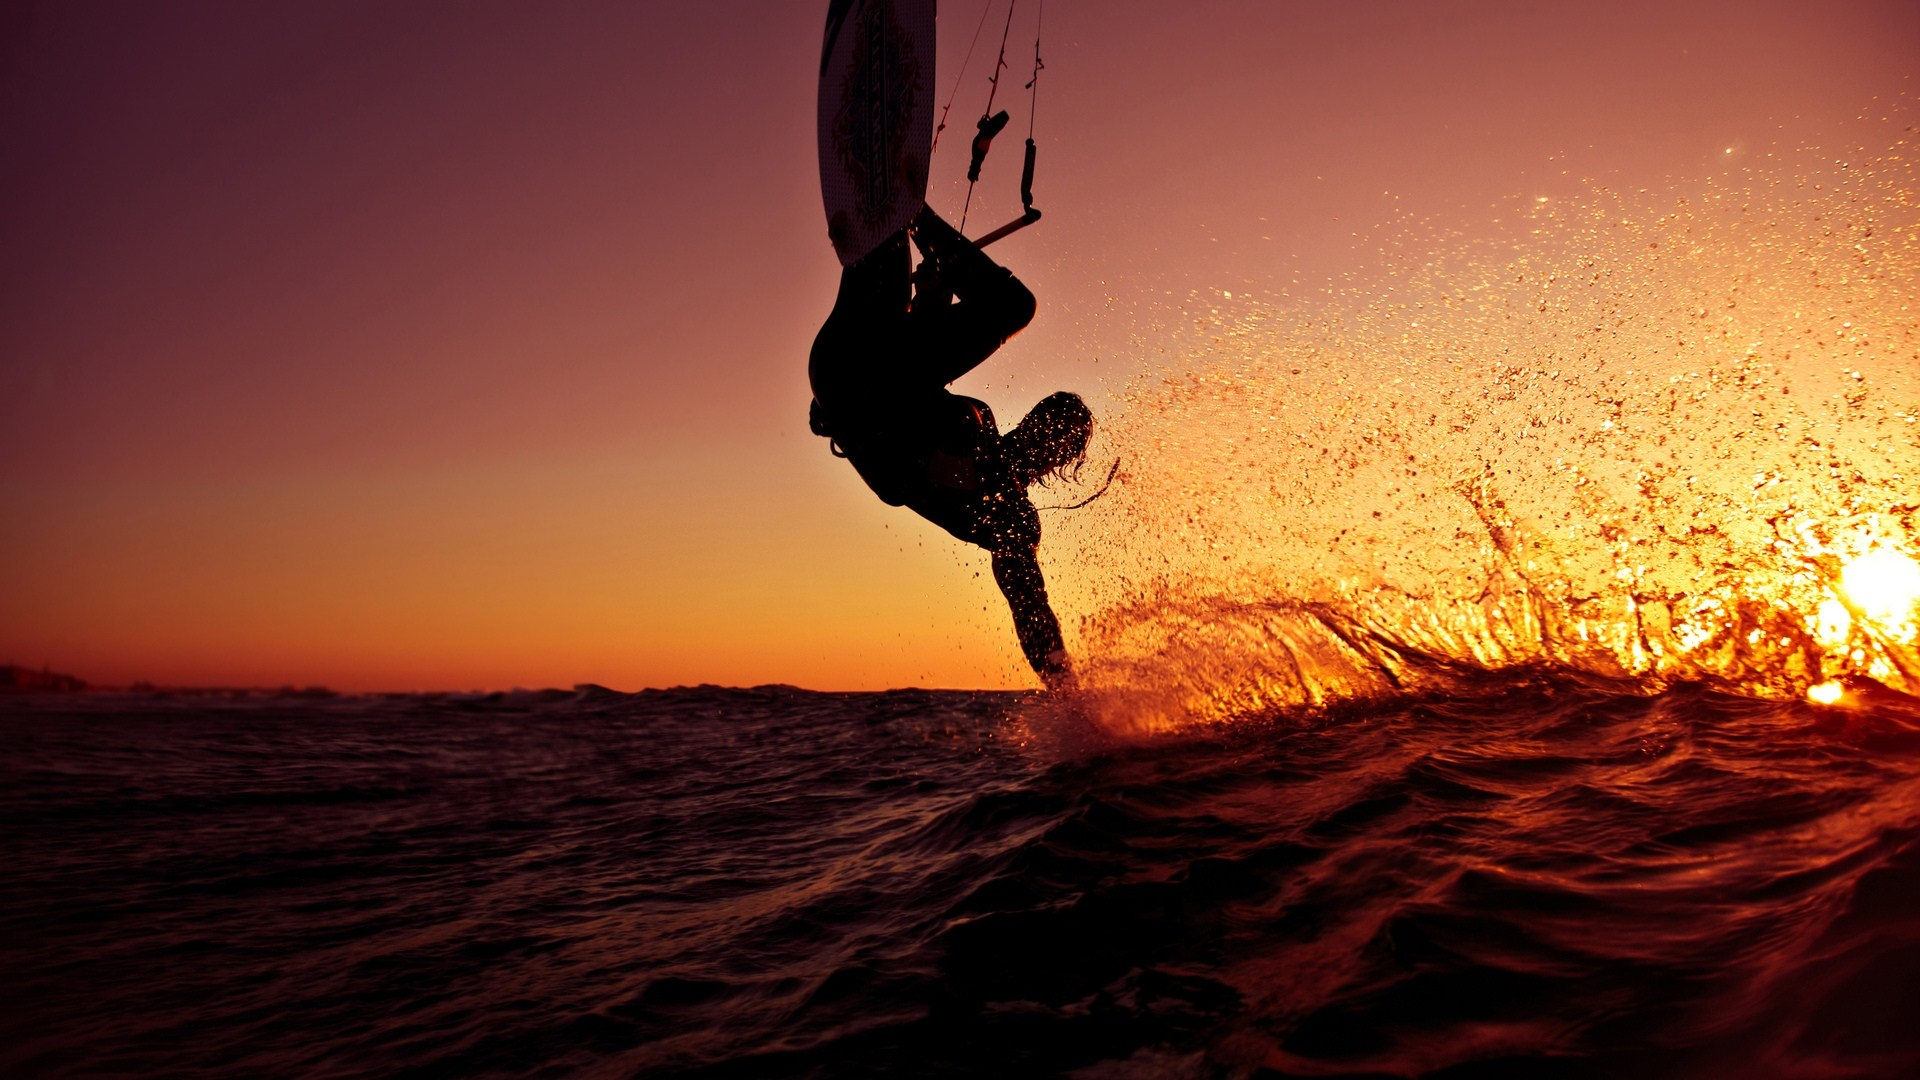 kitesurf-weather-wave-splash-wide-hd-wallpaper1